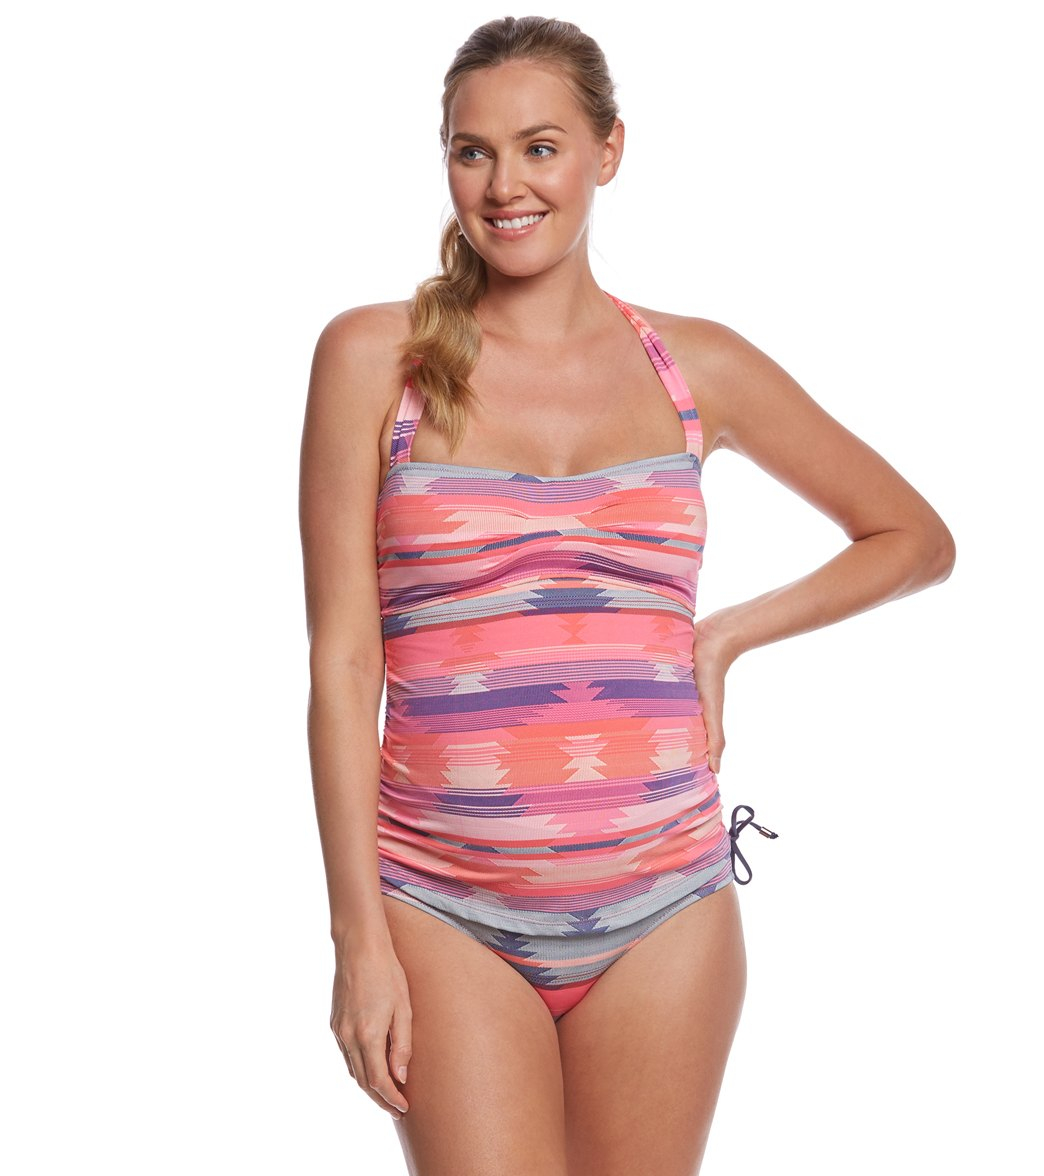 70e2d4d94be0d2 Pez D'or Maternity Palm Springs Navajo Jacquard Tankini Two Piece at  SwimOutlet.com - Free Shipping